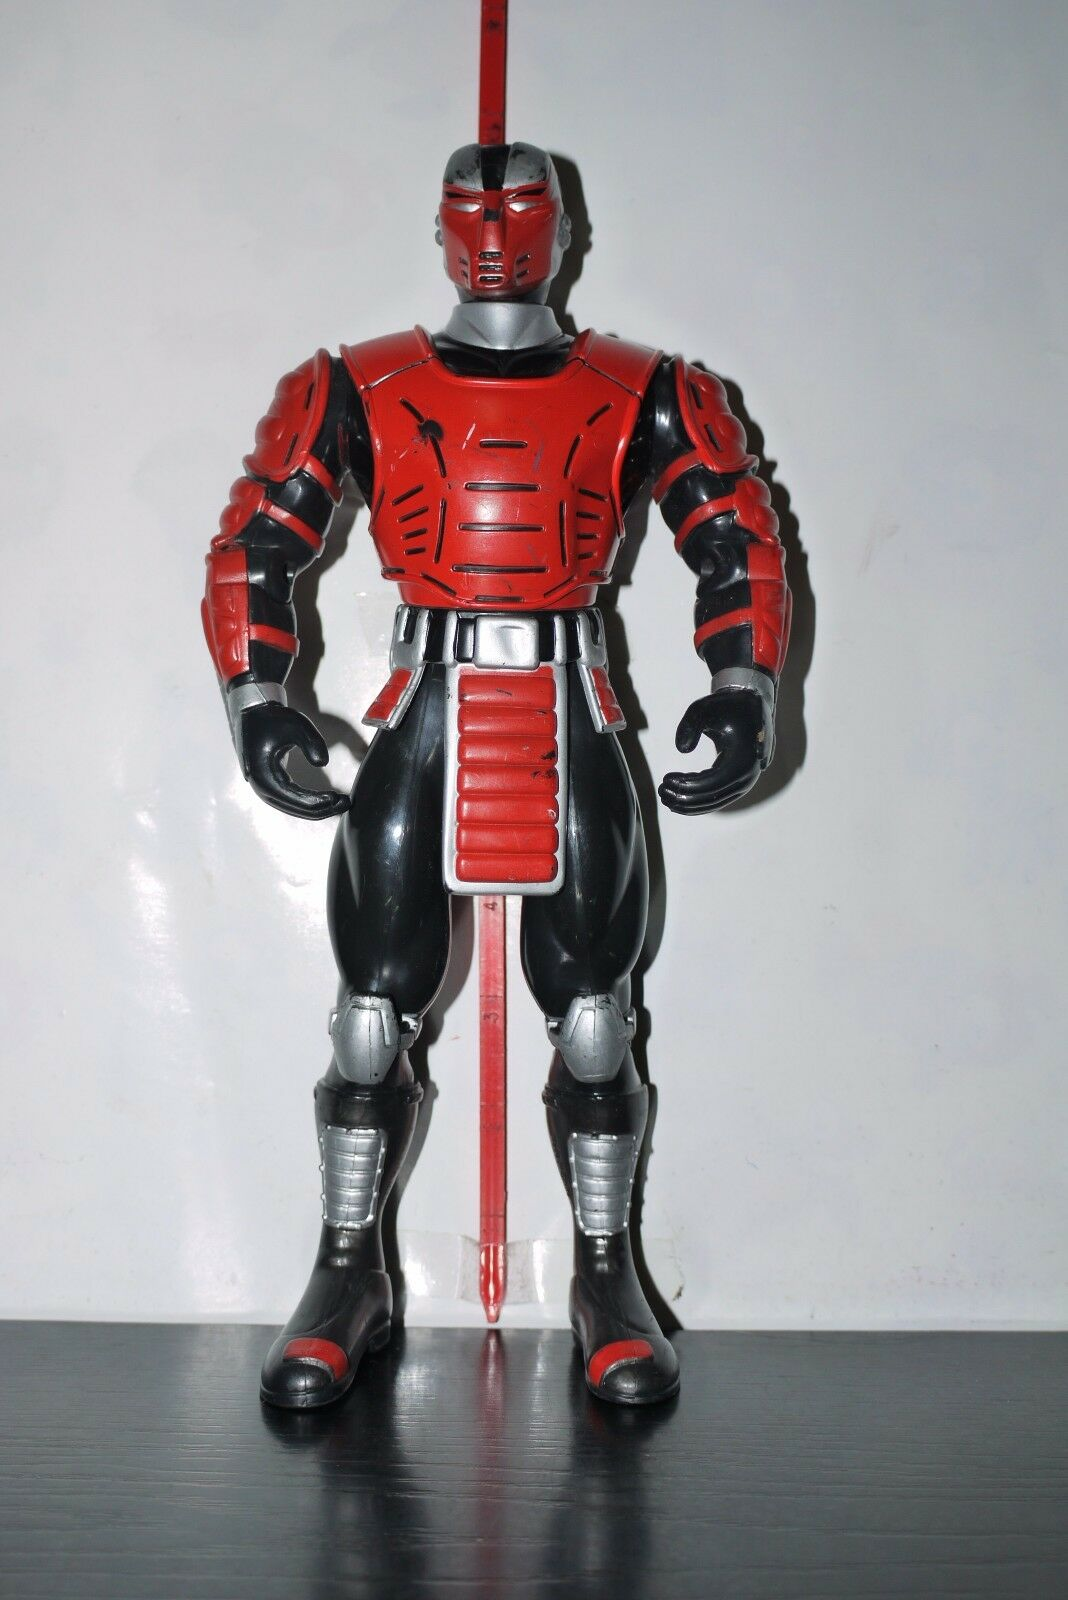 1998 Mortal kombat Trilogy SEKTOR super action figure 10